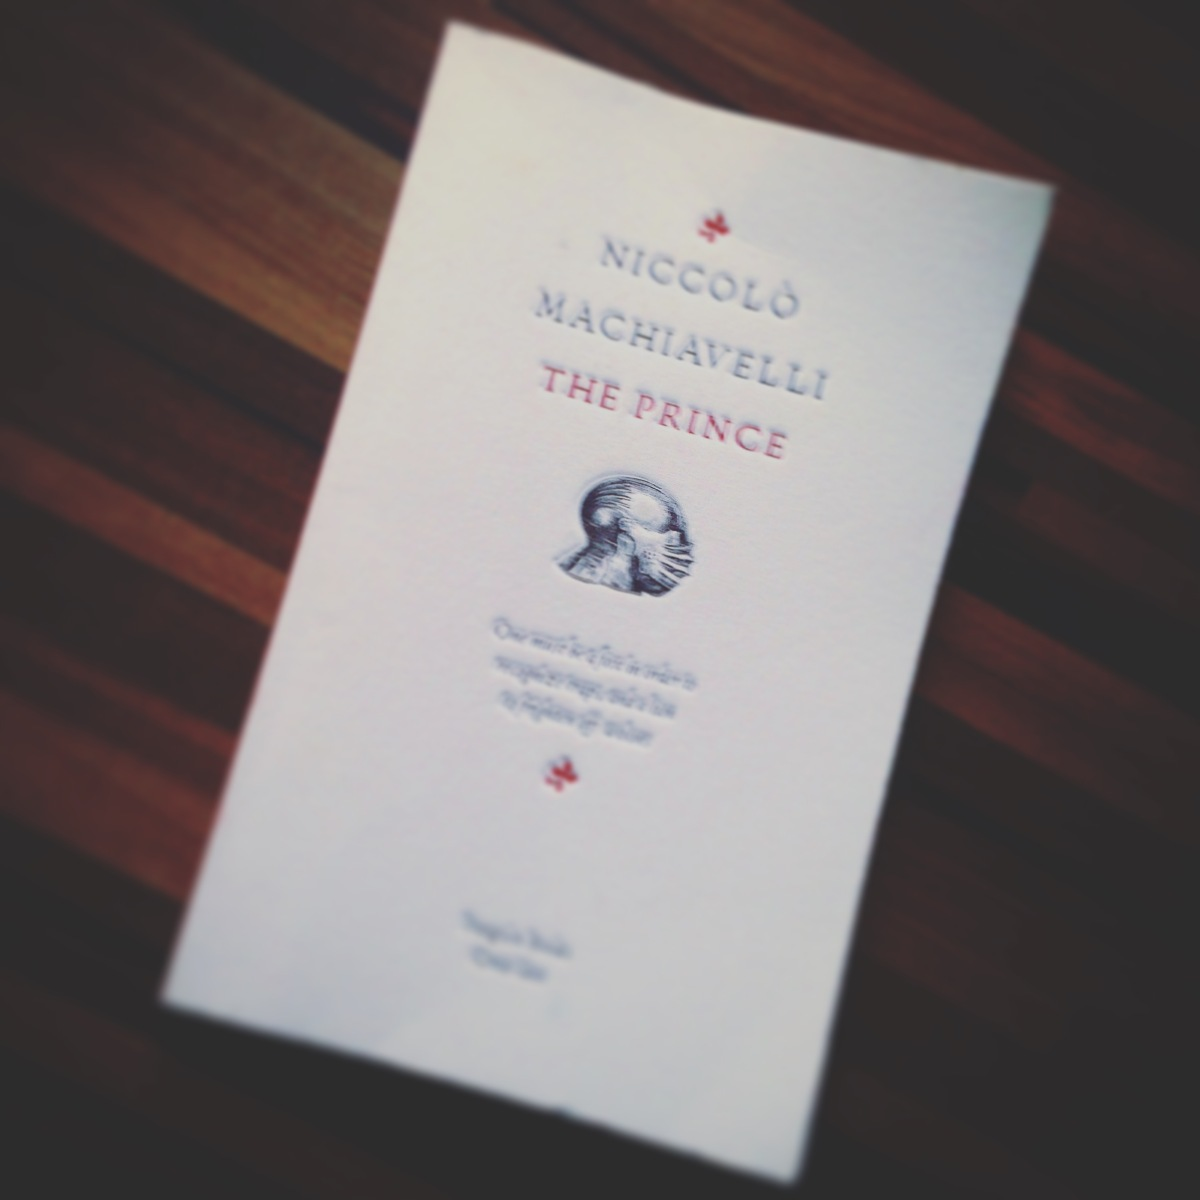 machiavelli the prince essay the prince by niccol ograve  book of da week the prince by niccol ograve machiavelli professional book of da week the